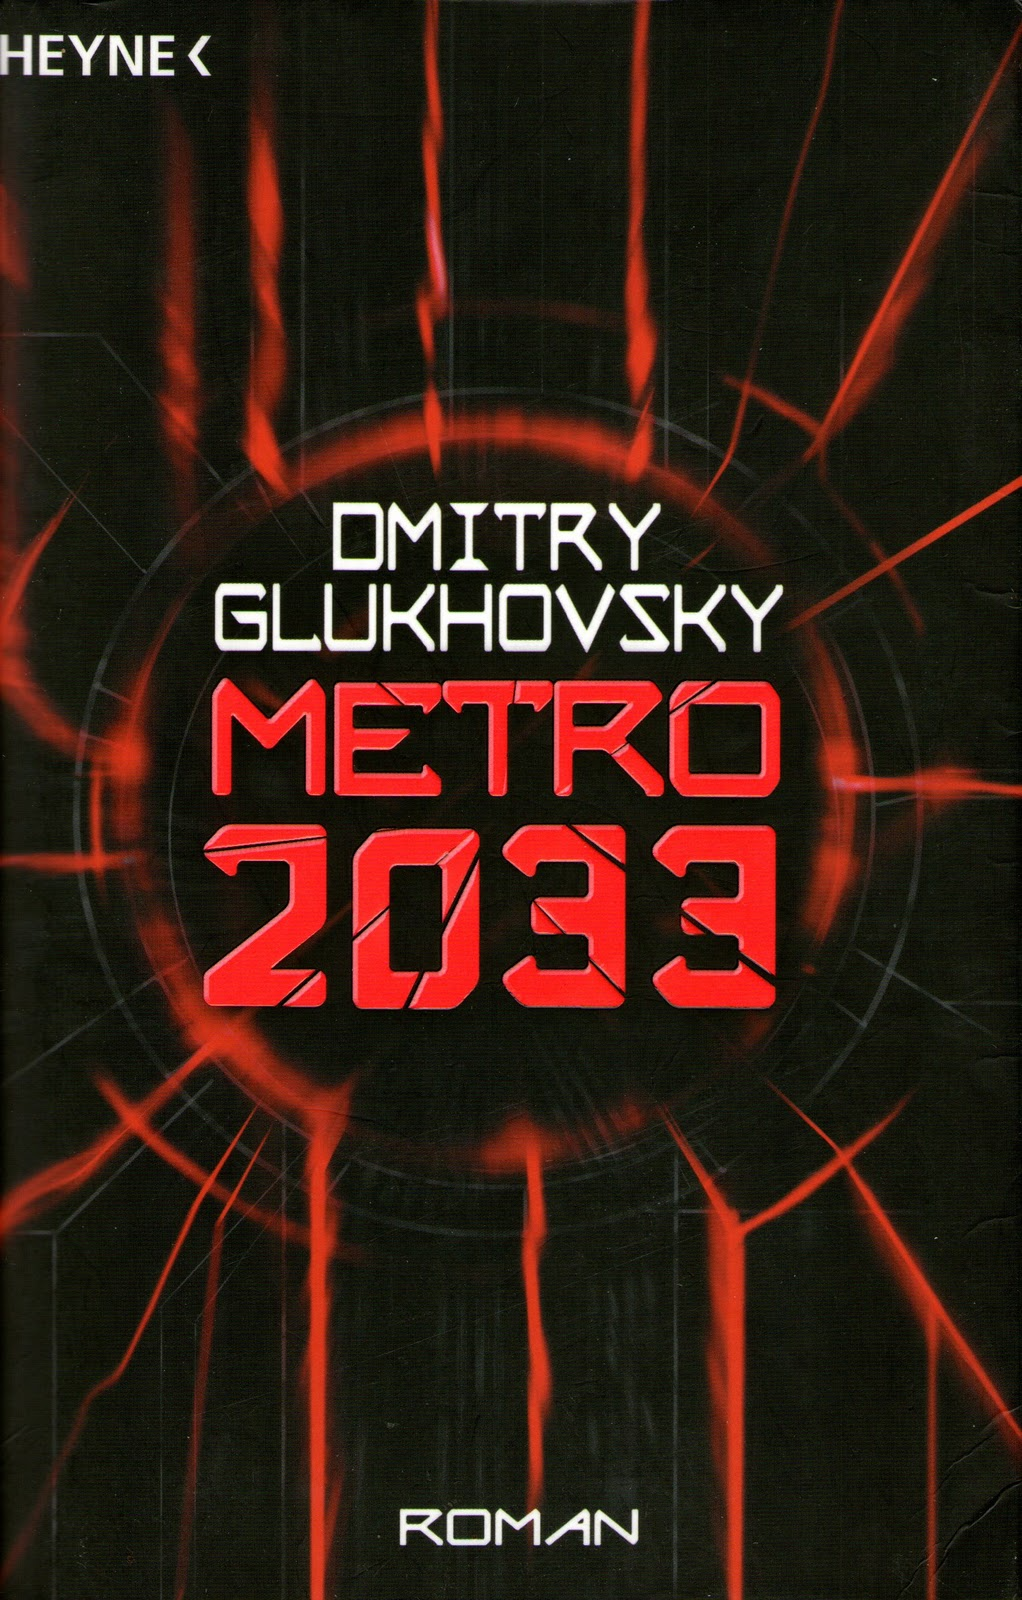 metro 2033 by dmitry glukhovsky essay Metro 2033 (russian: метро 2033) is a post-apocalyptic science fiction novel by russian author dmitry glukhovsky it is set in the moscow metro, where the last survivors hide after a global nuclear holocaust it was published in 2005 in russia and on march 28, 2010 in the united states metro 2033 has spawned two.